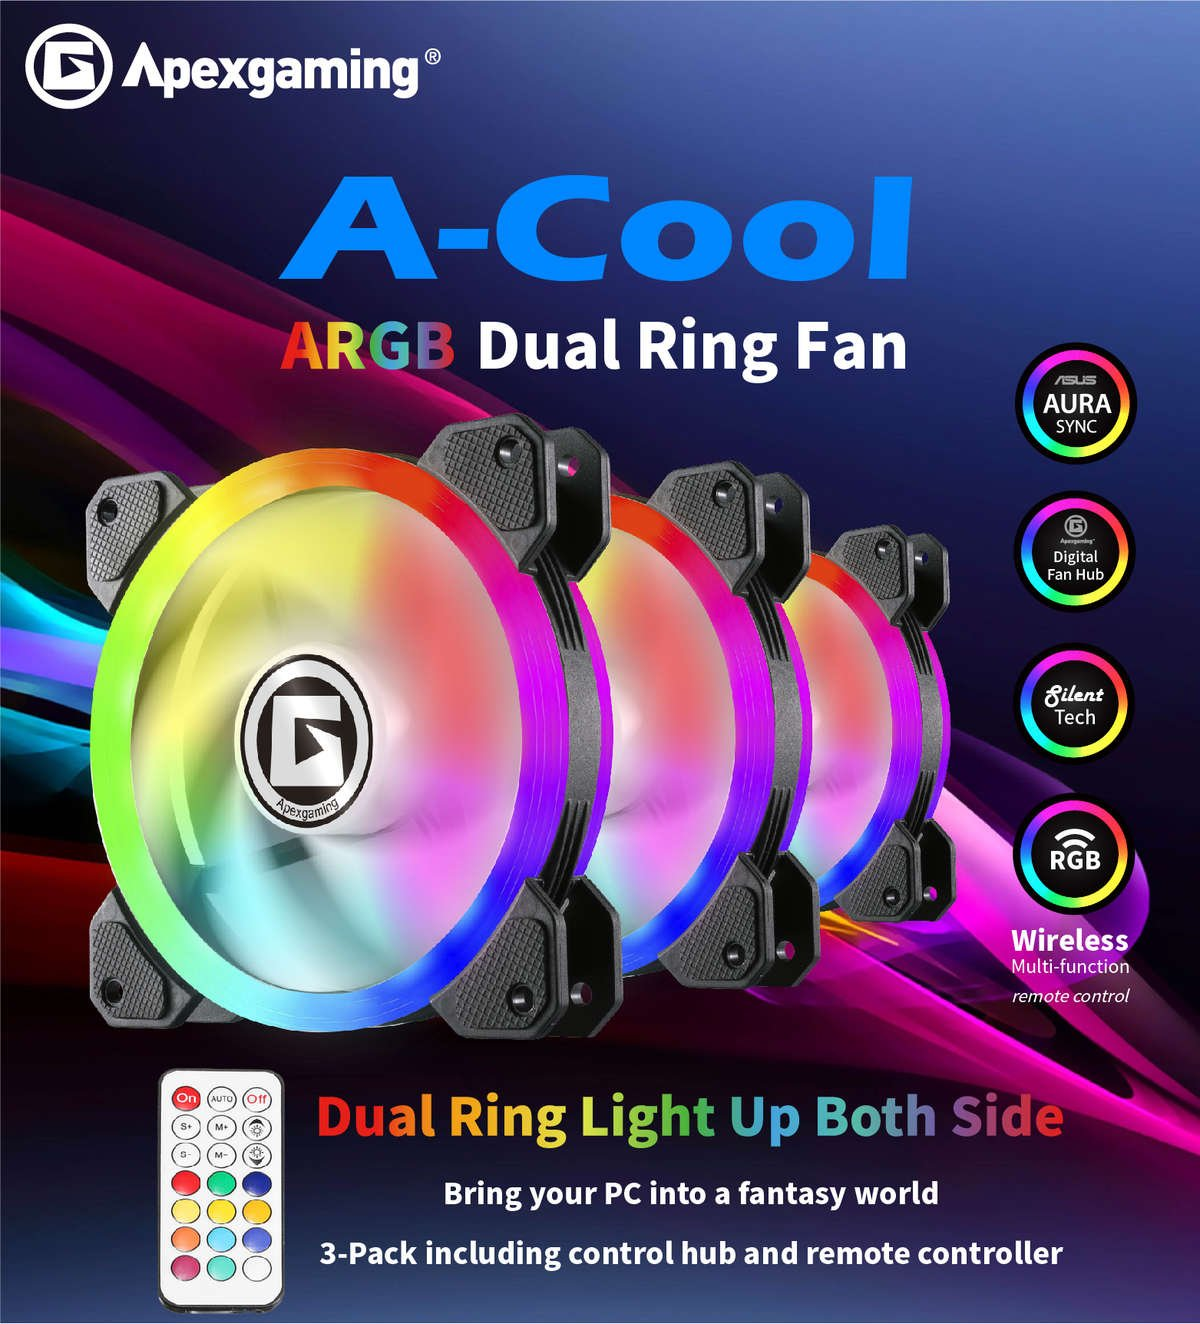 Apexgaming A-Cool ARGB Dual Ring Fan ( 3-pack including RGB controller)